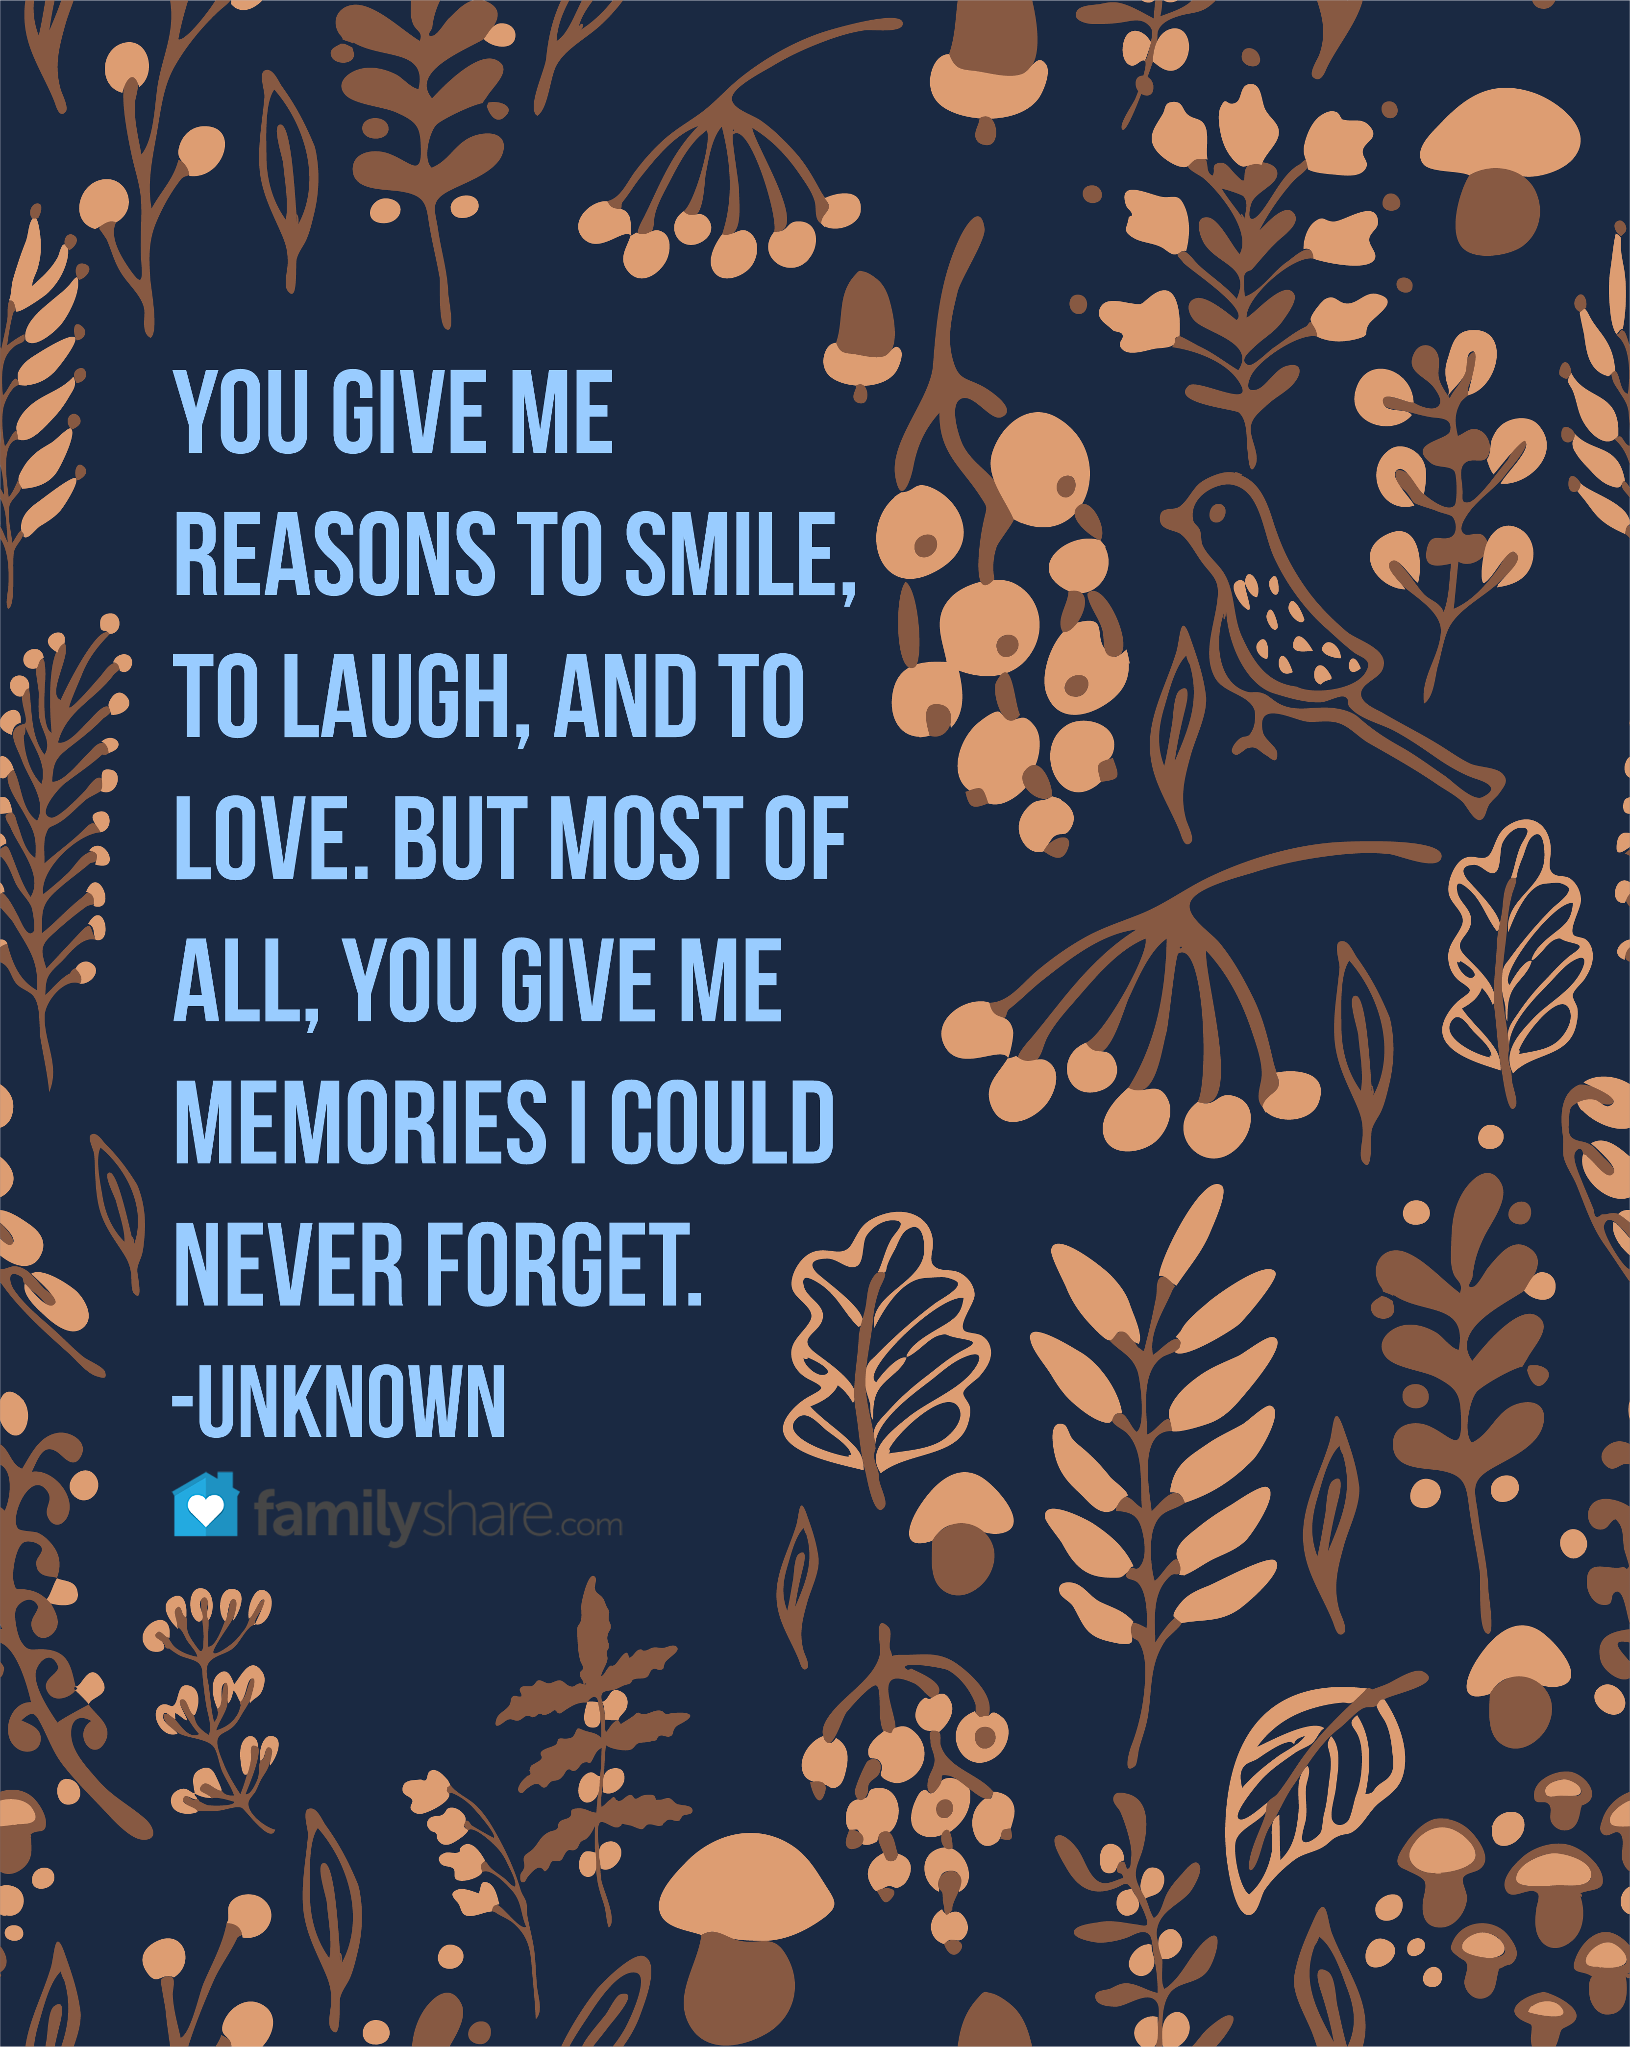 You Give Me Reason To Smile To Laugh And Too Love But Most Of All You Give Me Memories I Could Never Reasons To Smile Quotes Smile Quotes Reasons To Smile